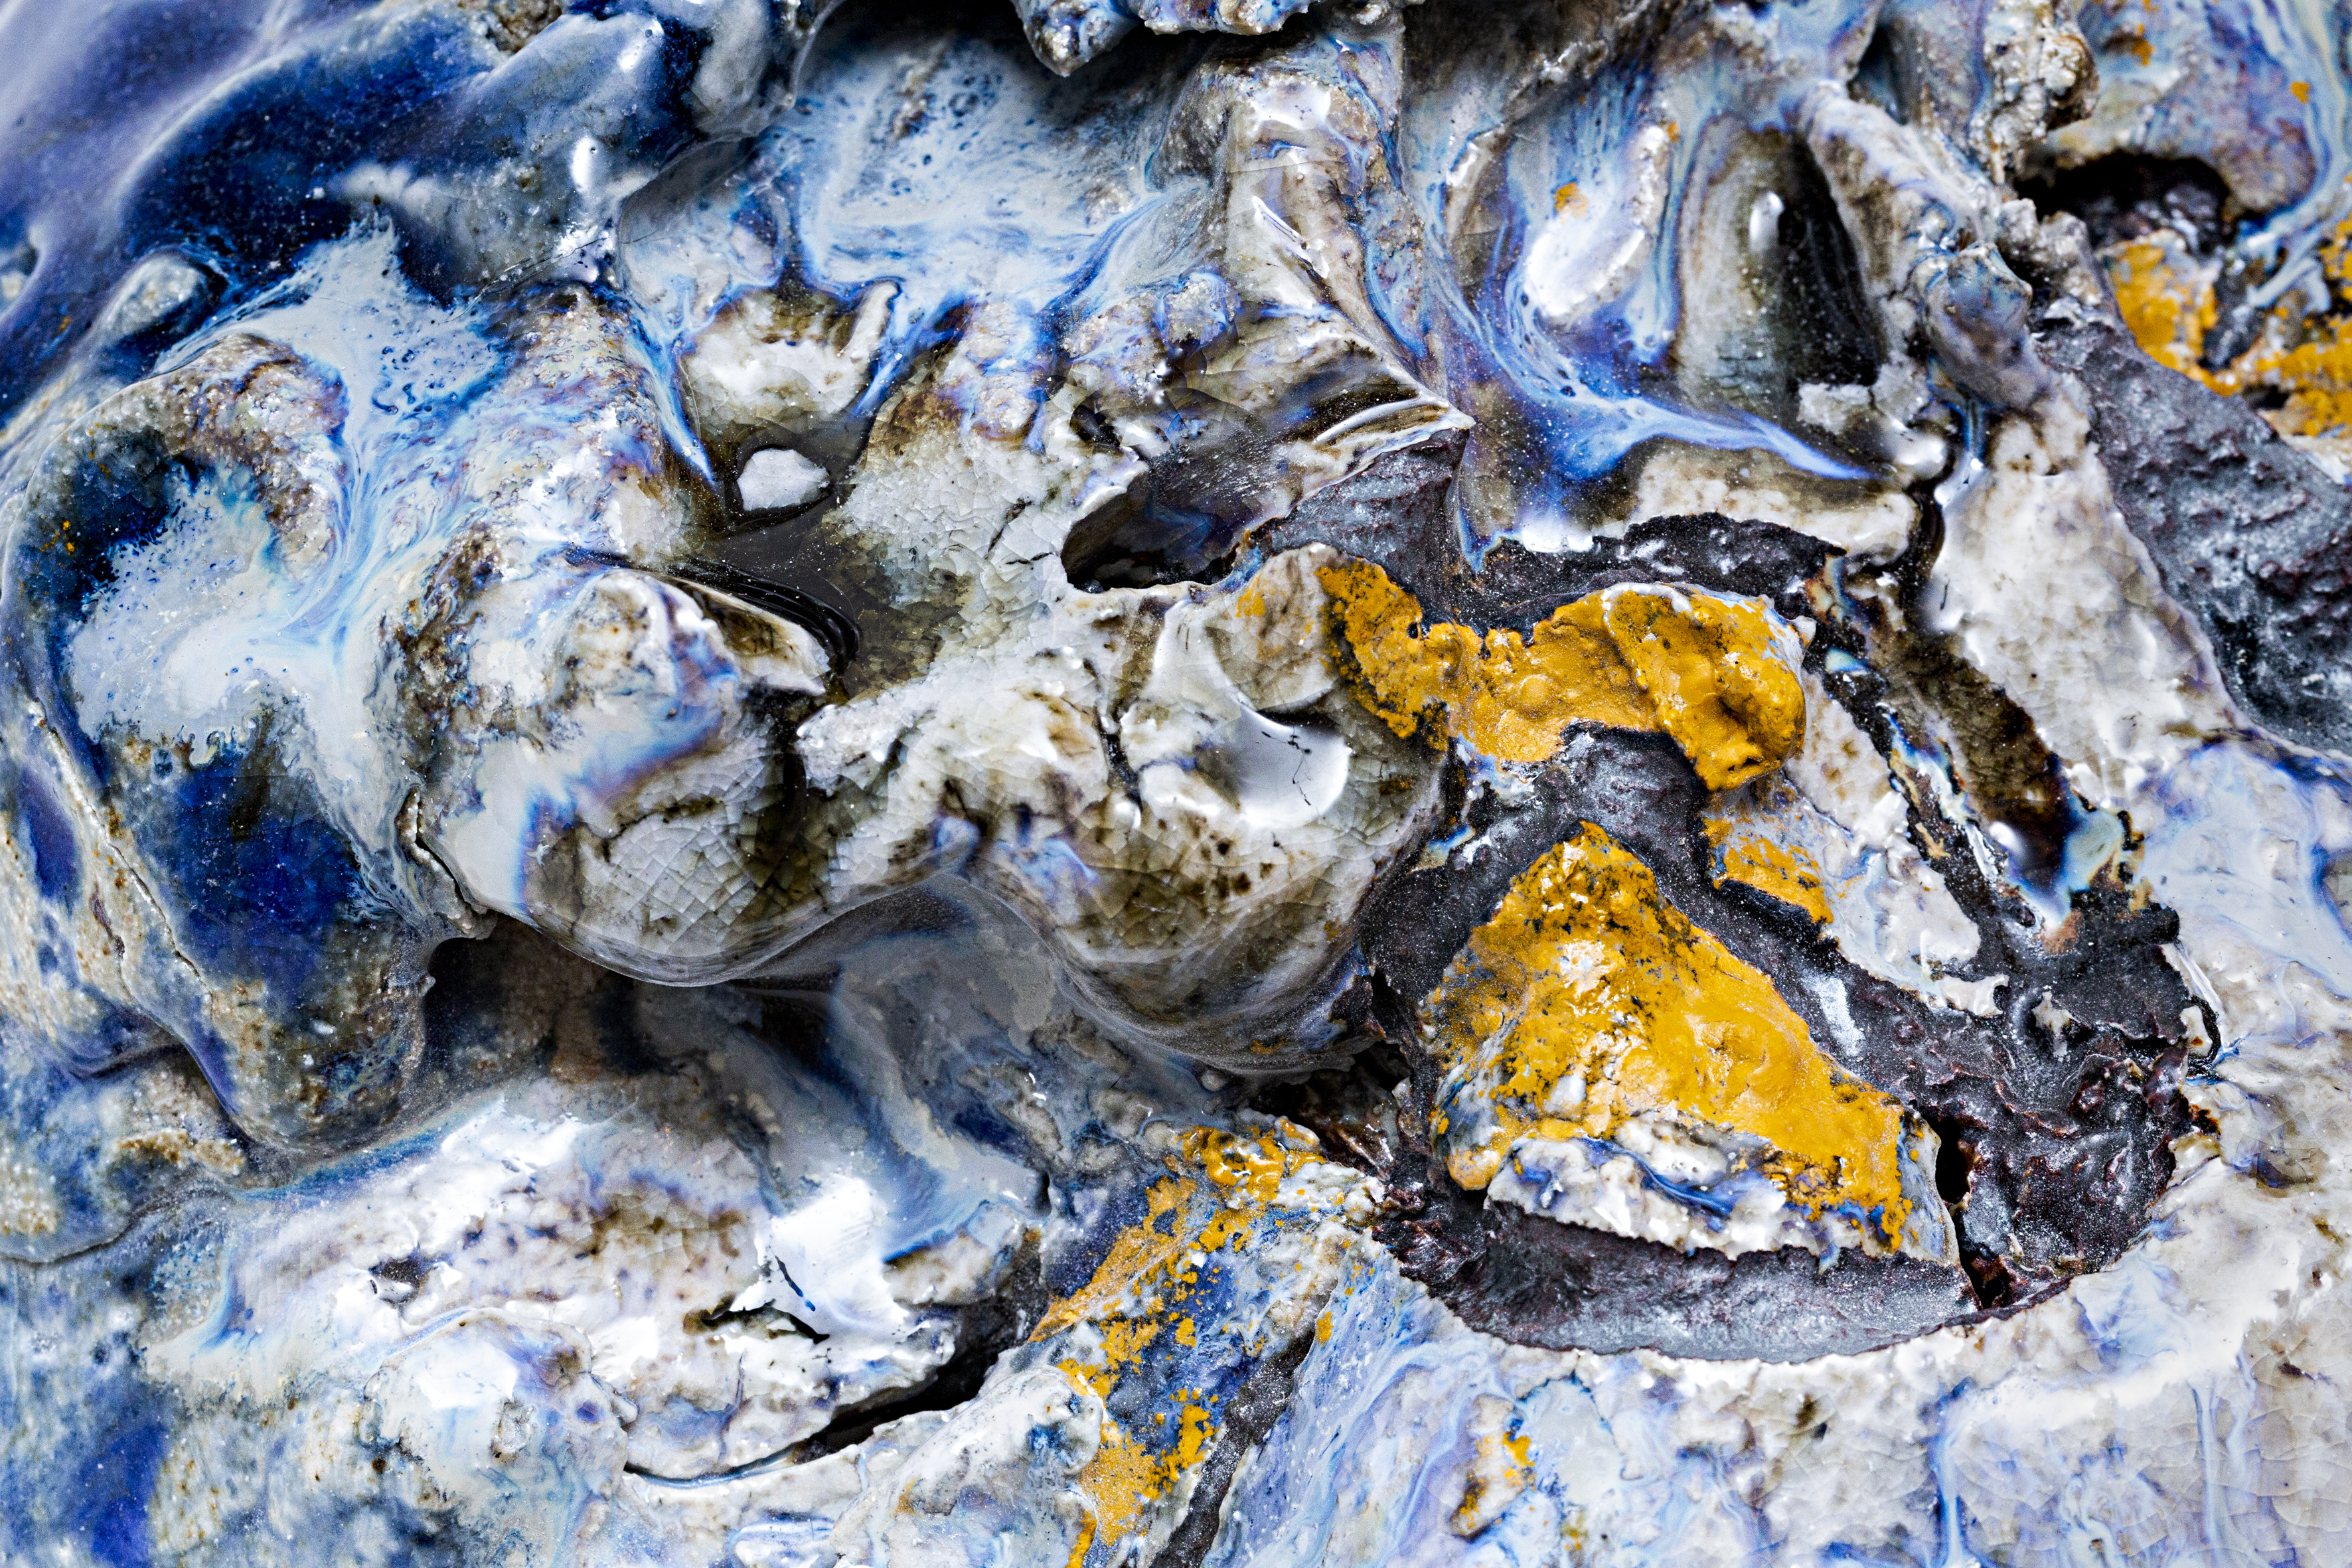 Detailed photograph of blue and yellow glazes on a textured ceramic surface